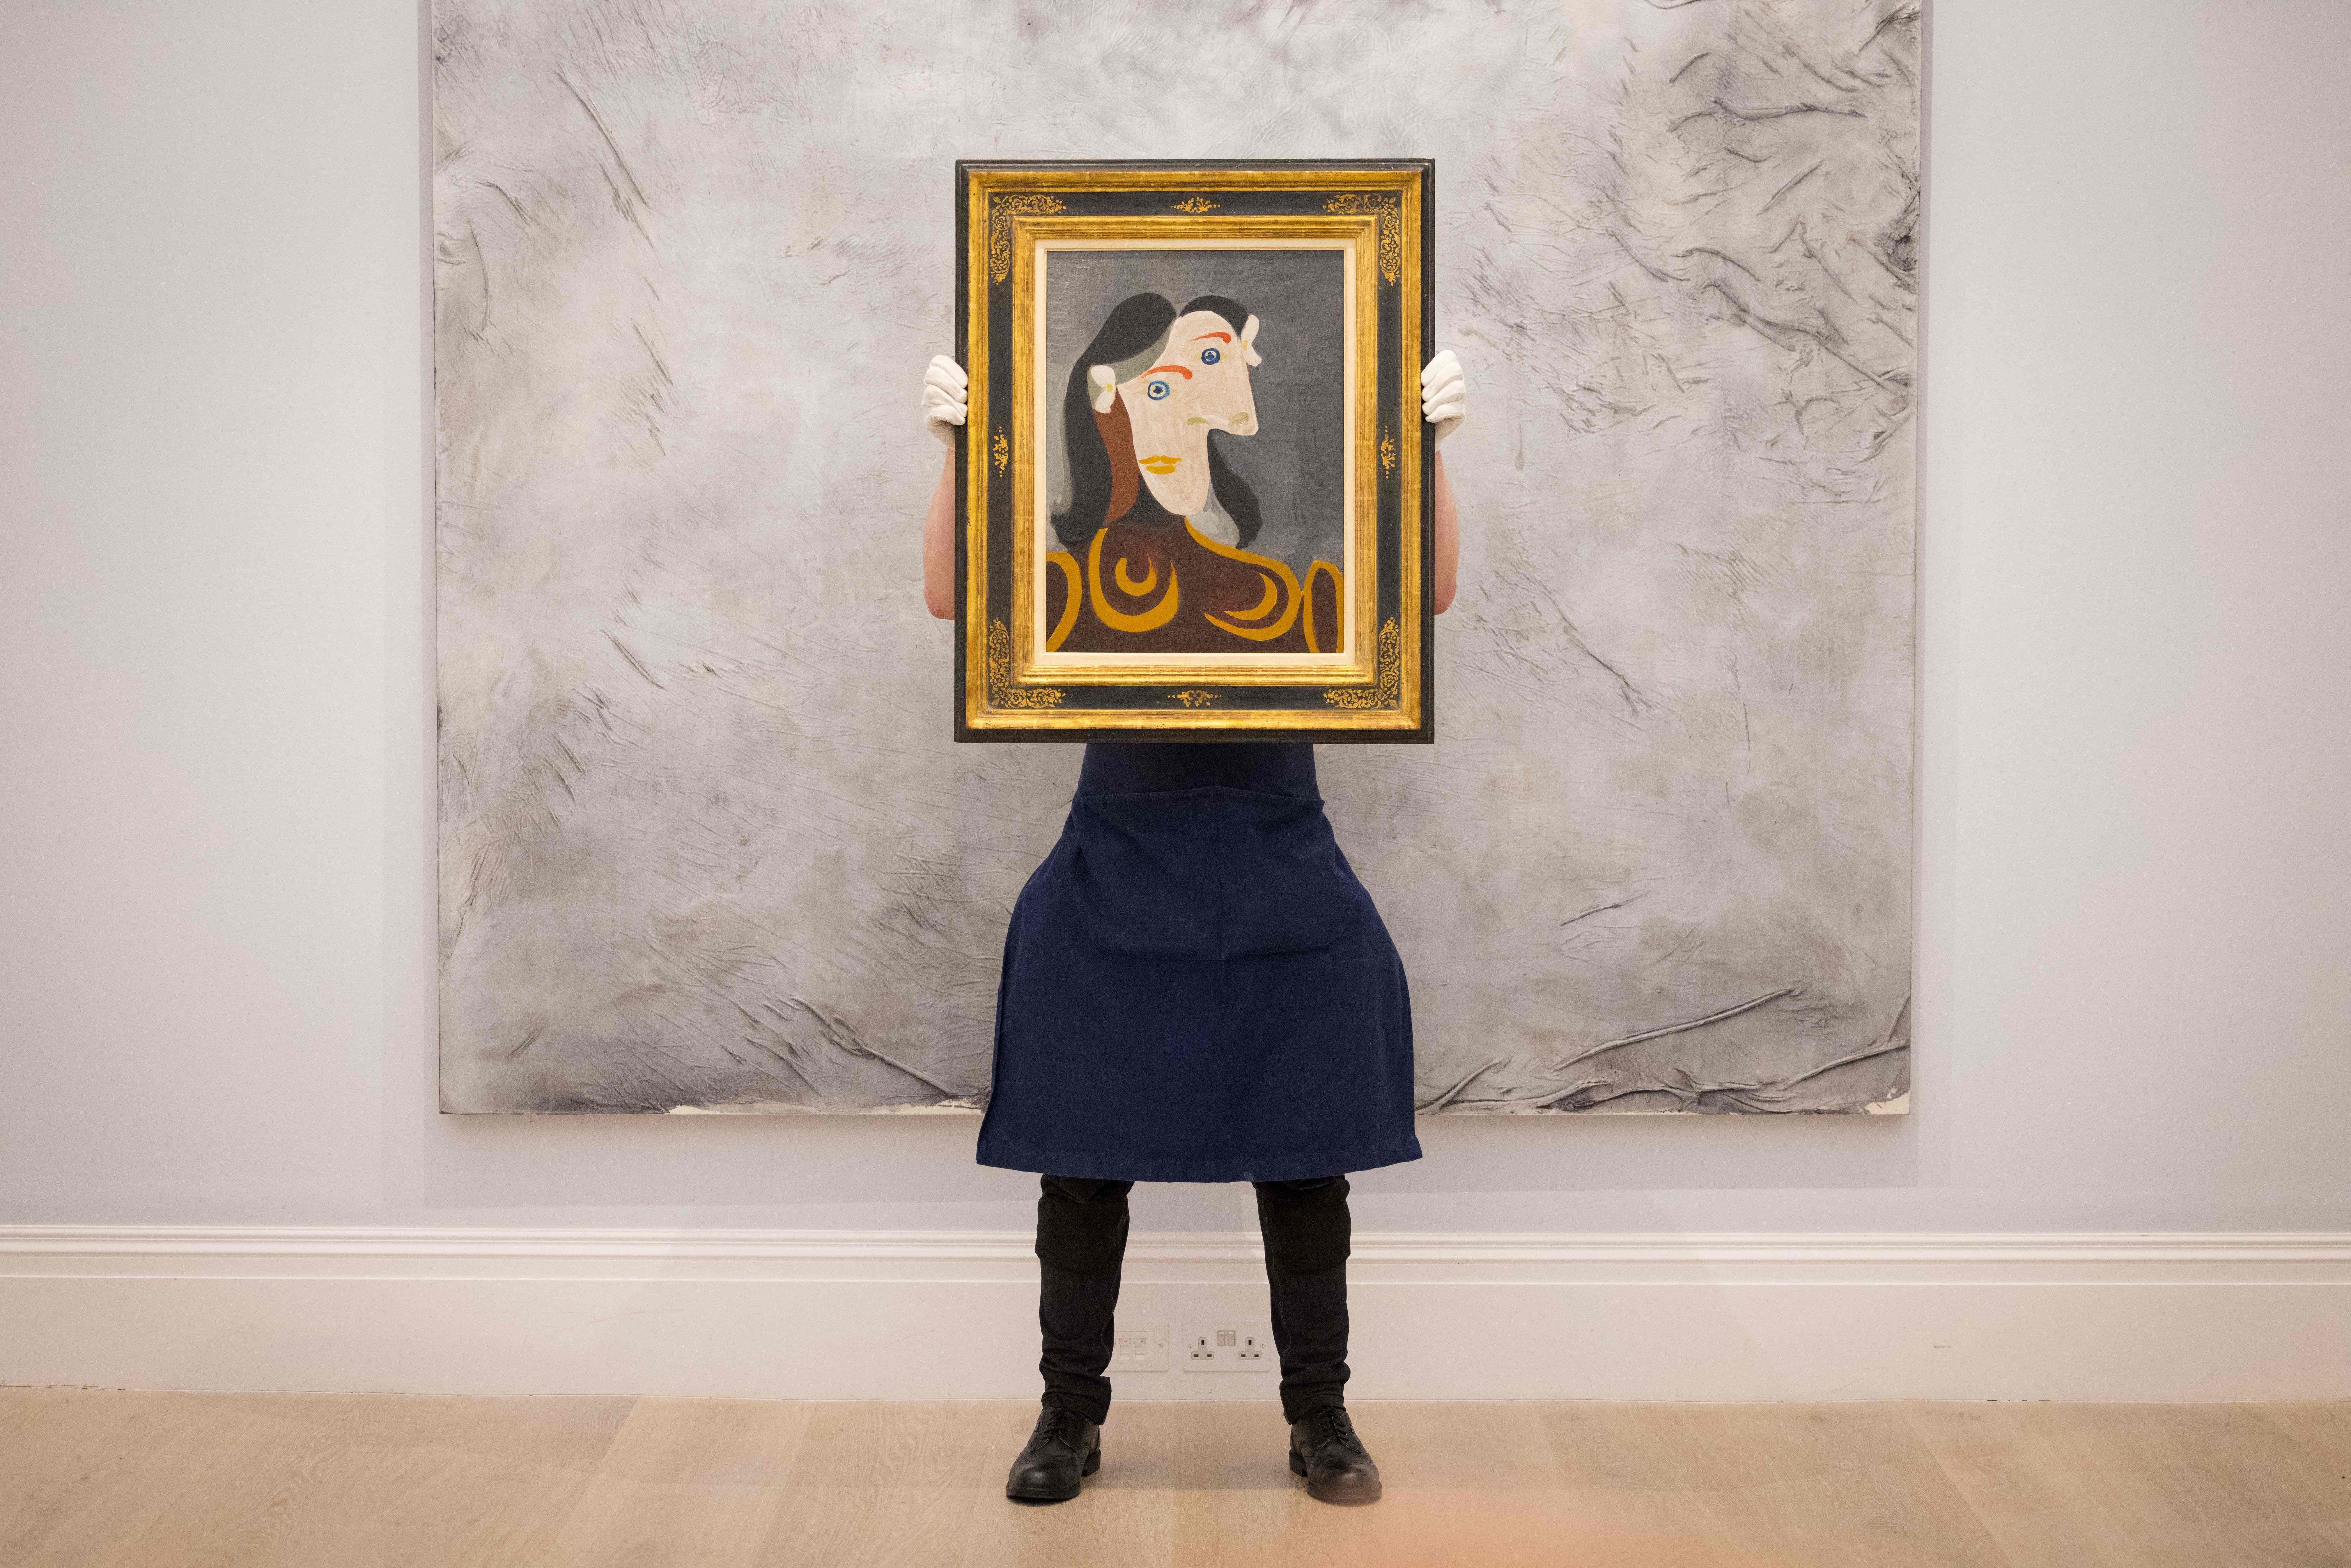 <p>TOPSHOT - A gallery worker poses with an artwork entitled Buste de femme à la robe brune by Spanish painter Pablo Picasso during a photocall at the preview of Sotheby's Major Summer Auctions at Sothebys auction house in central London on June 22, 2021. - - RESTRICTED TO EDITORIAL USE - MANDATORY MENTION OF THE ARTIST UPON PUBLICATION - TO ILLUSTRATE THE EVENT AS SPECIFIED IN THE CAPTION (Photo by Tolga Akmen / AFP) / RESTRICTED TO EDITORIAL USE - MANDATORY MENTION OF THE ARTIST UPON PUBLICATION - TO ILLUSTRATE THE EVENT AS SPECIFIED IN THE CAPTION / RESTRICTED TO EDITORIAL USE - MANDATORY MENTION OF THE ARTIST UPON PUBLICATION - TO ILLUSTRATE THE EVENT AS SPECIFIED IN THE CAPTION (Photo by TOLGA AKMEN/AFP via Getty Images)</p>